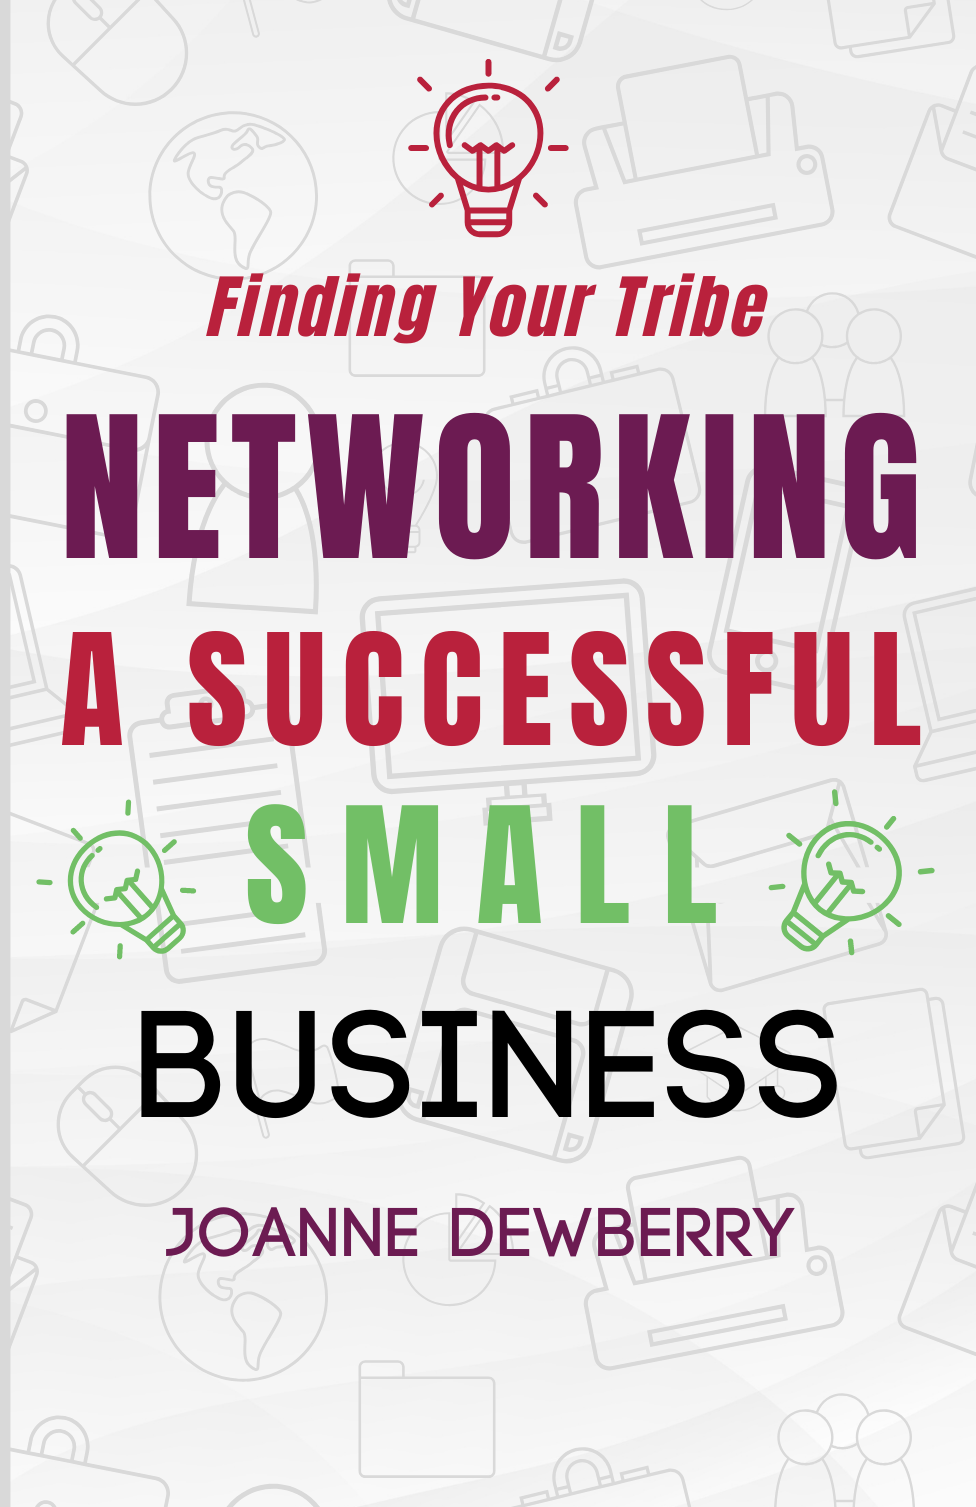 Networking A Successful Small Business – The Book